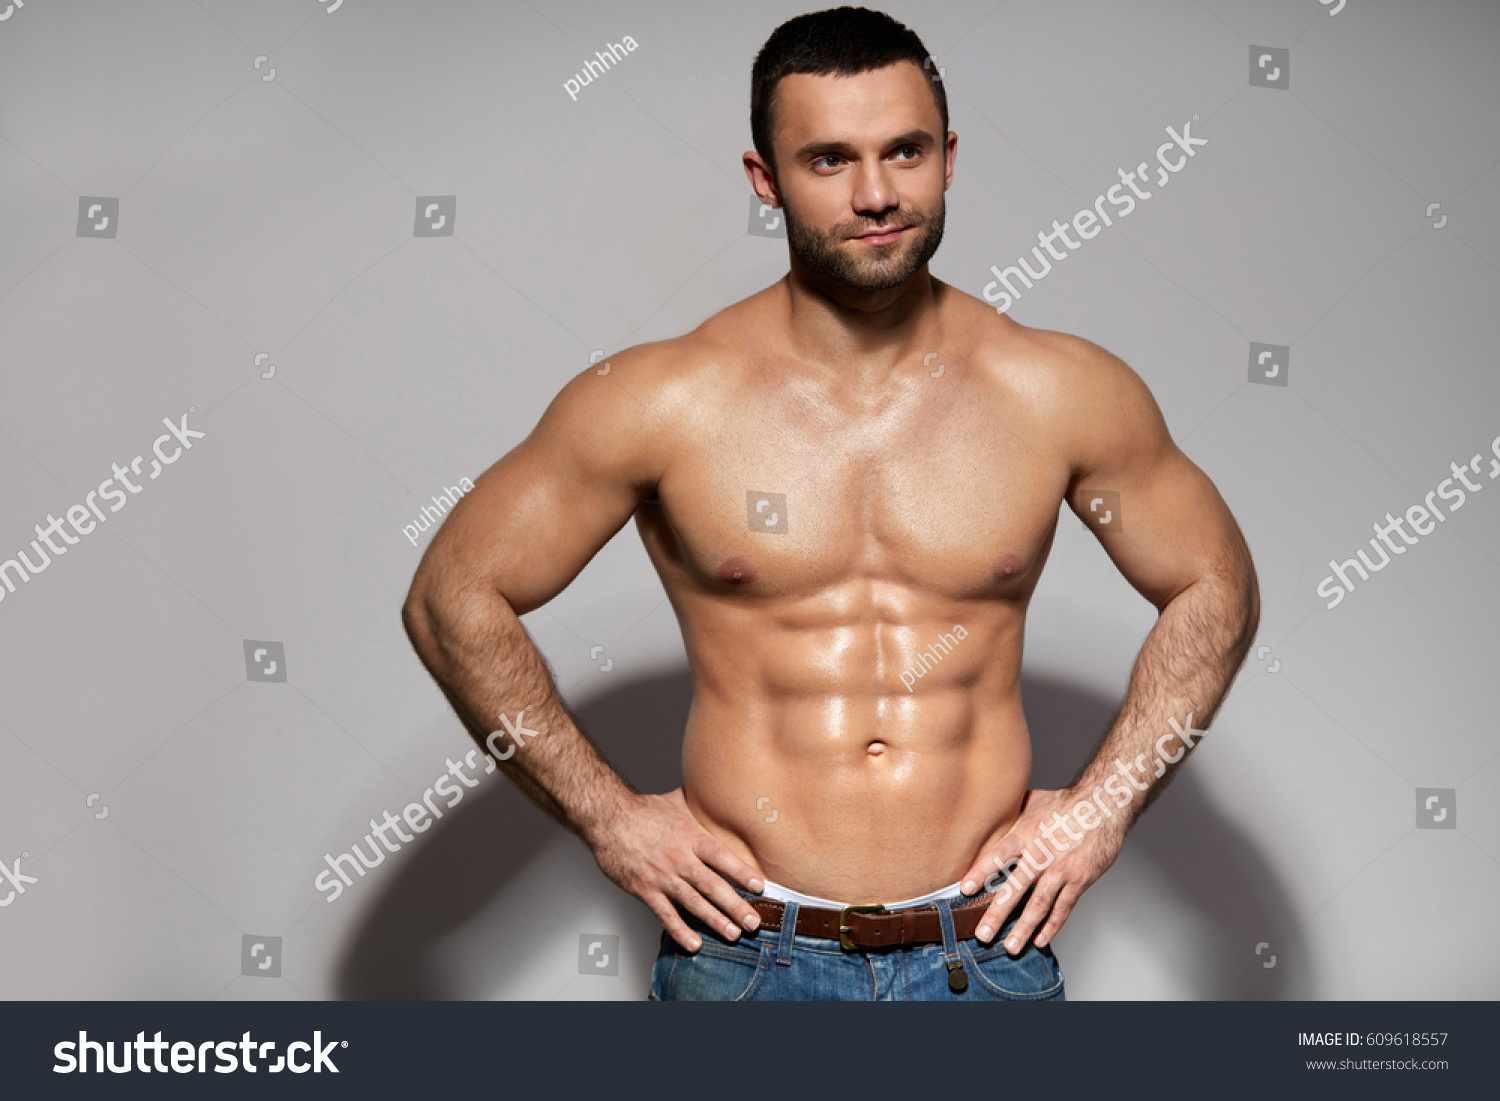 Shape man body perfect Behold, the